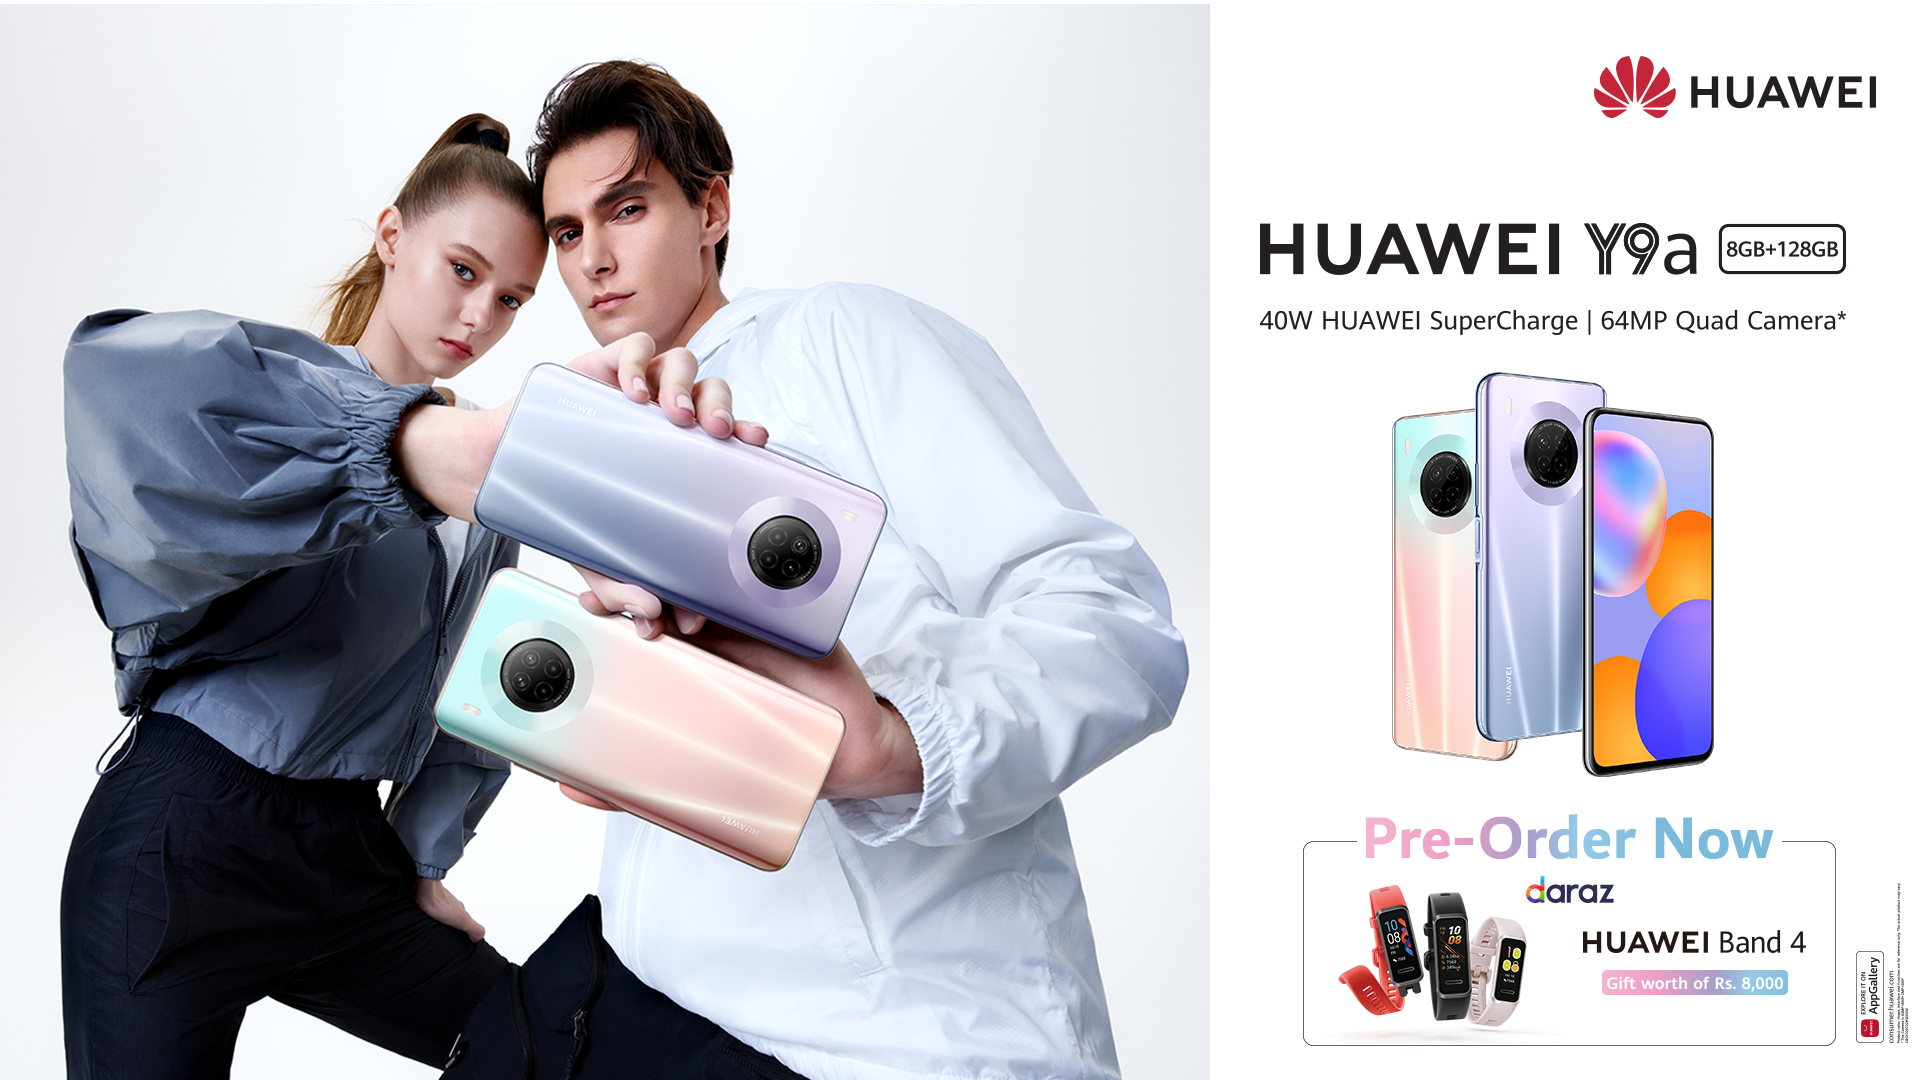 HUAWEI Y Series Hit a New High with the Midrange King HUAWEI Y9a – Now Open for Pre-orders